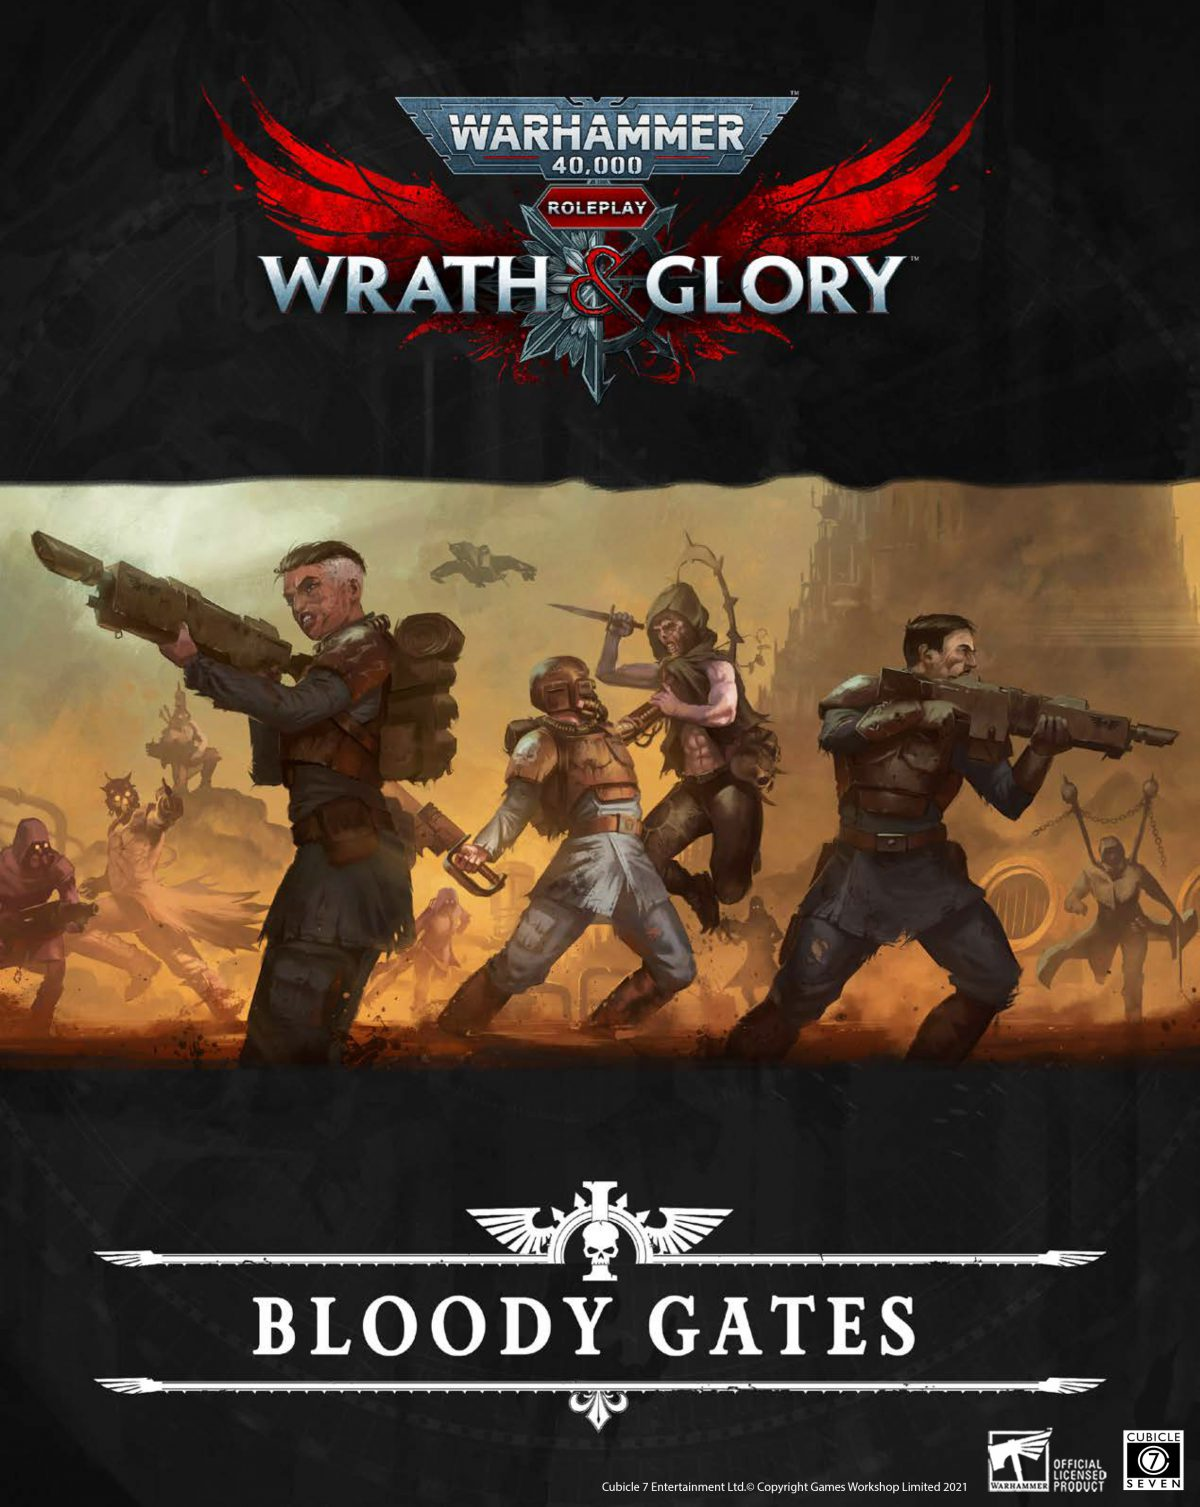 Get the Latest Wrath & Glory Releases!